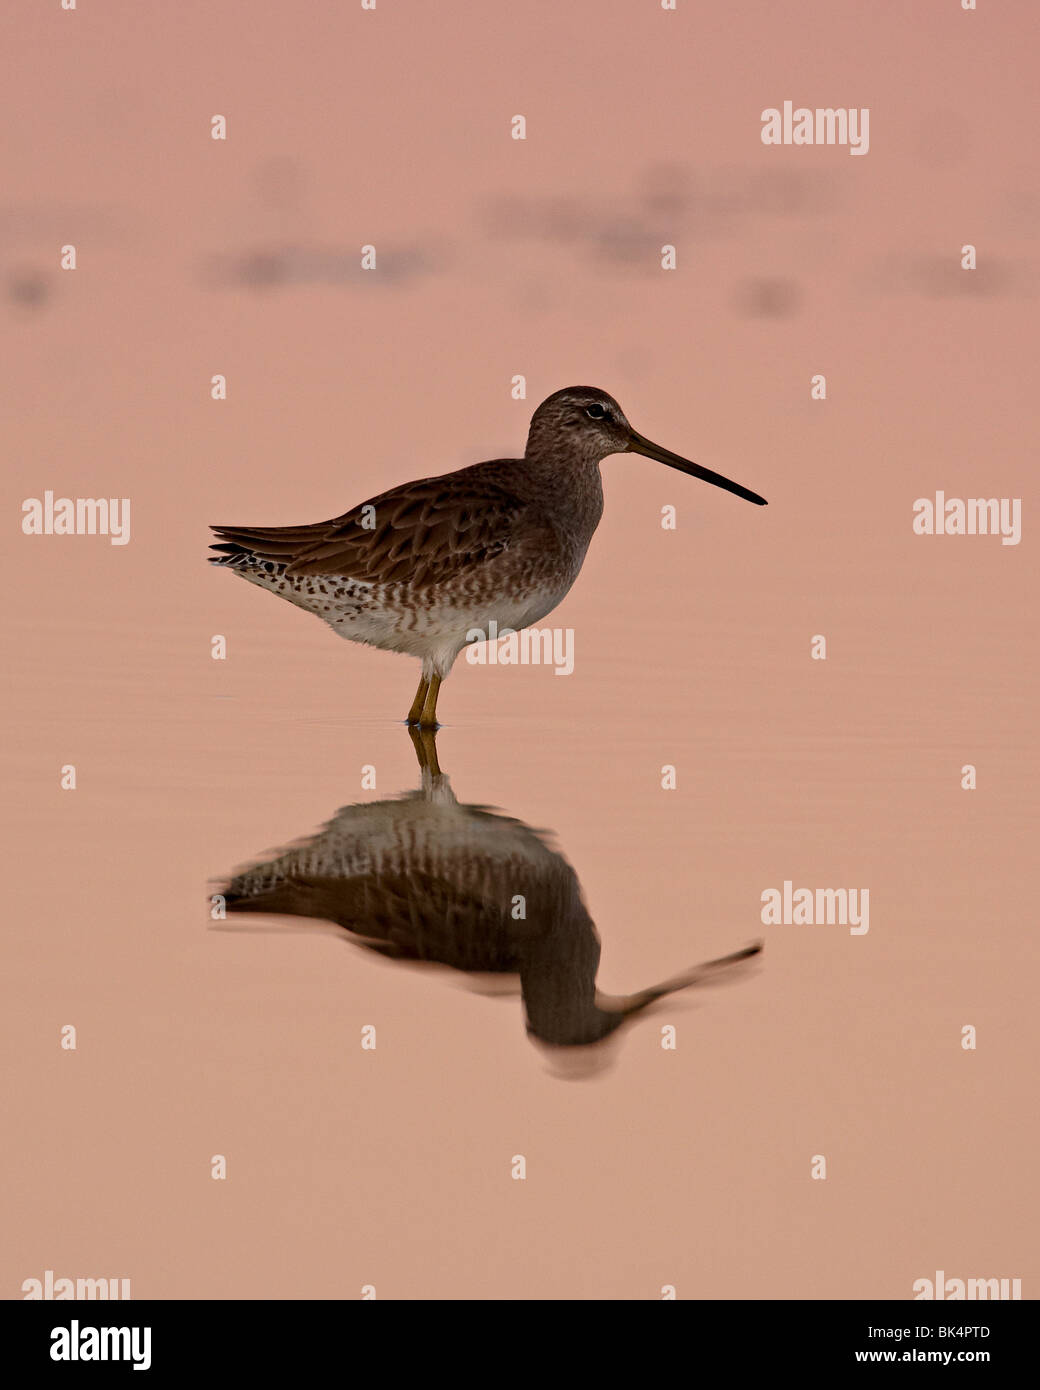 Short-Billed Dowitcher, Sonny Bono Salton Sea National Wildlife Refuge, California, USA - Stock Image